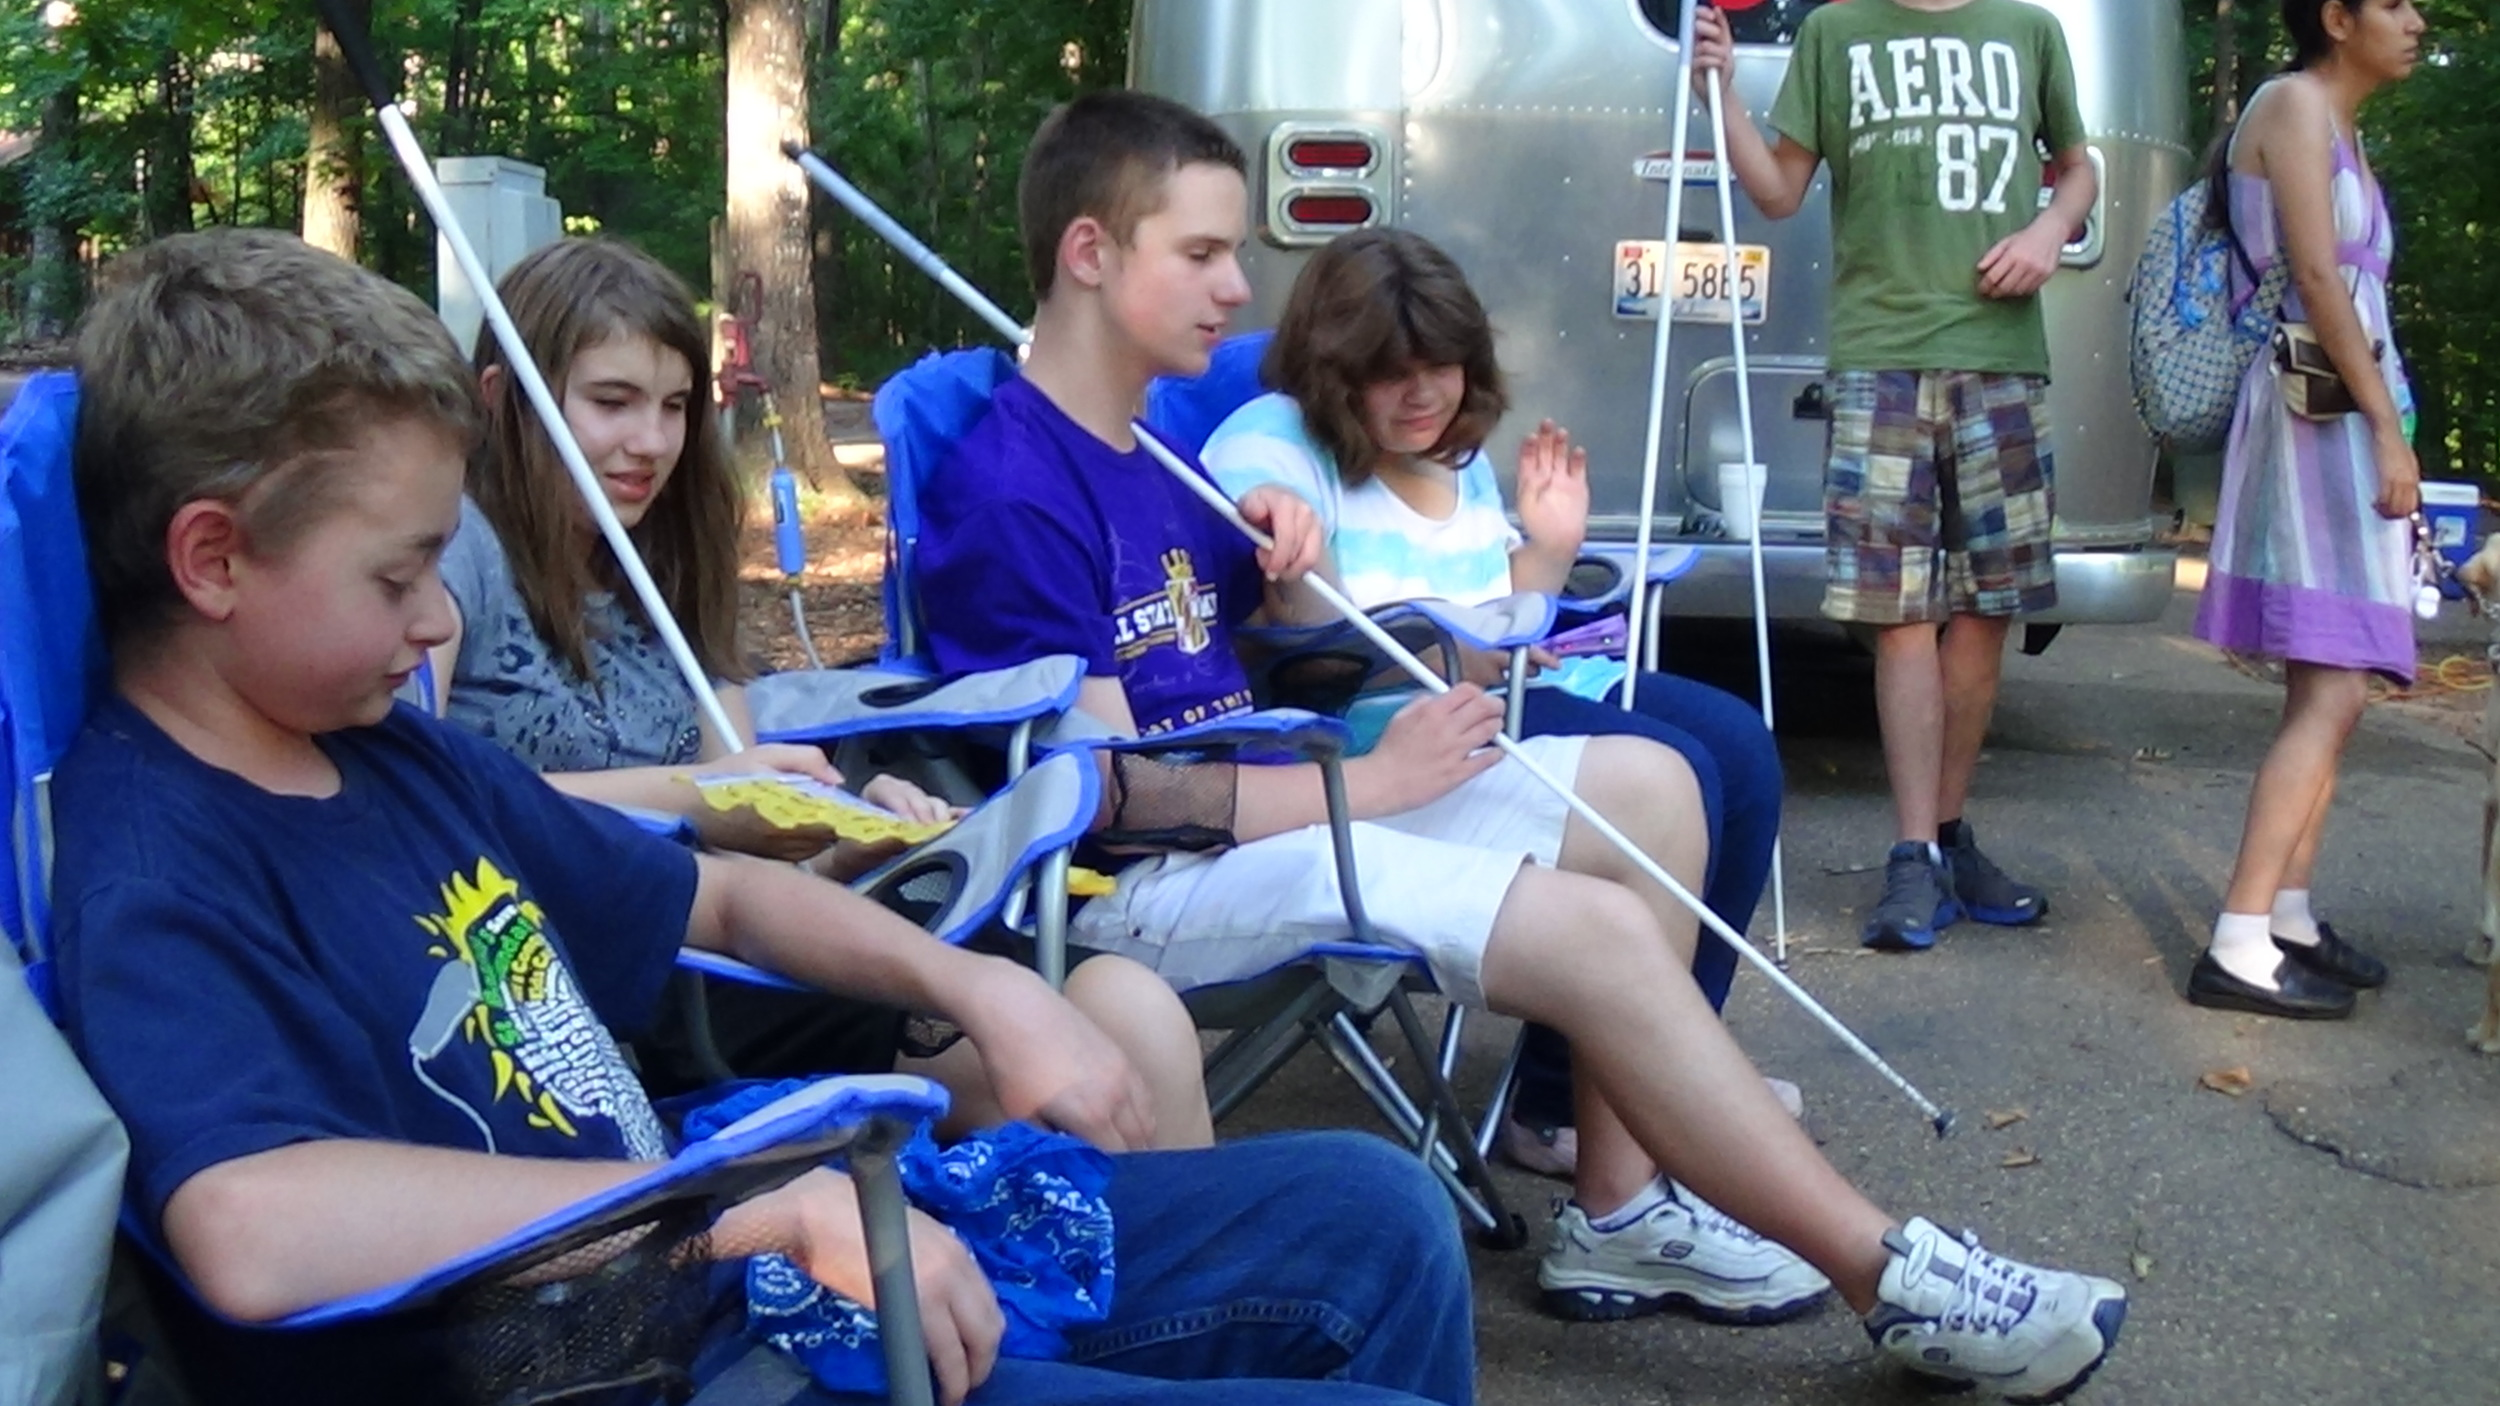 2013 STEP students chill and talk at a campsite.